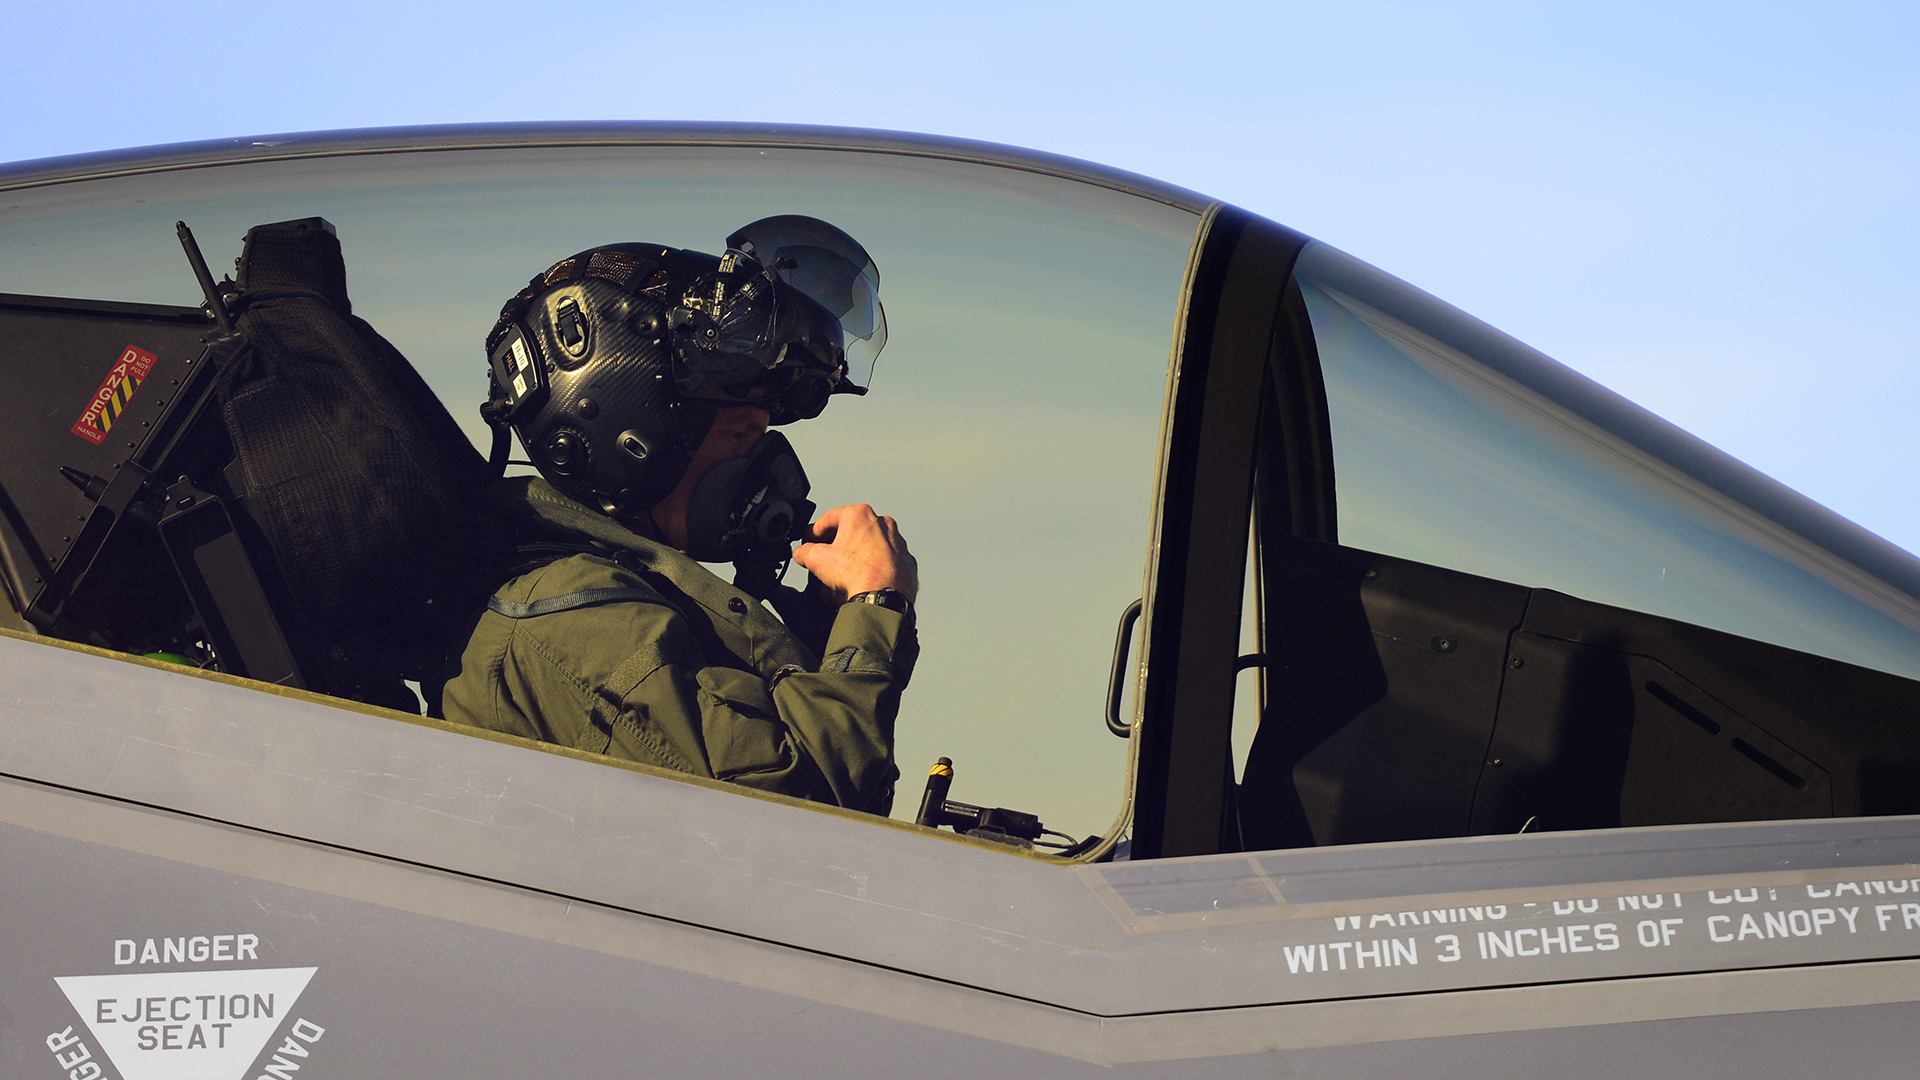 U.S. Air Force Major Kevin Hall goes through his pre-flight checks before flying an F-35A at Hill Air Force Base, Utah. Hall is an F-35 test pilot. (U.S. Air Force photo by Airman 1st Class Joshua D. King/ RELEASED)